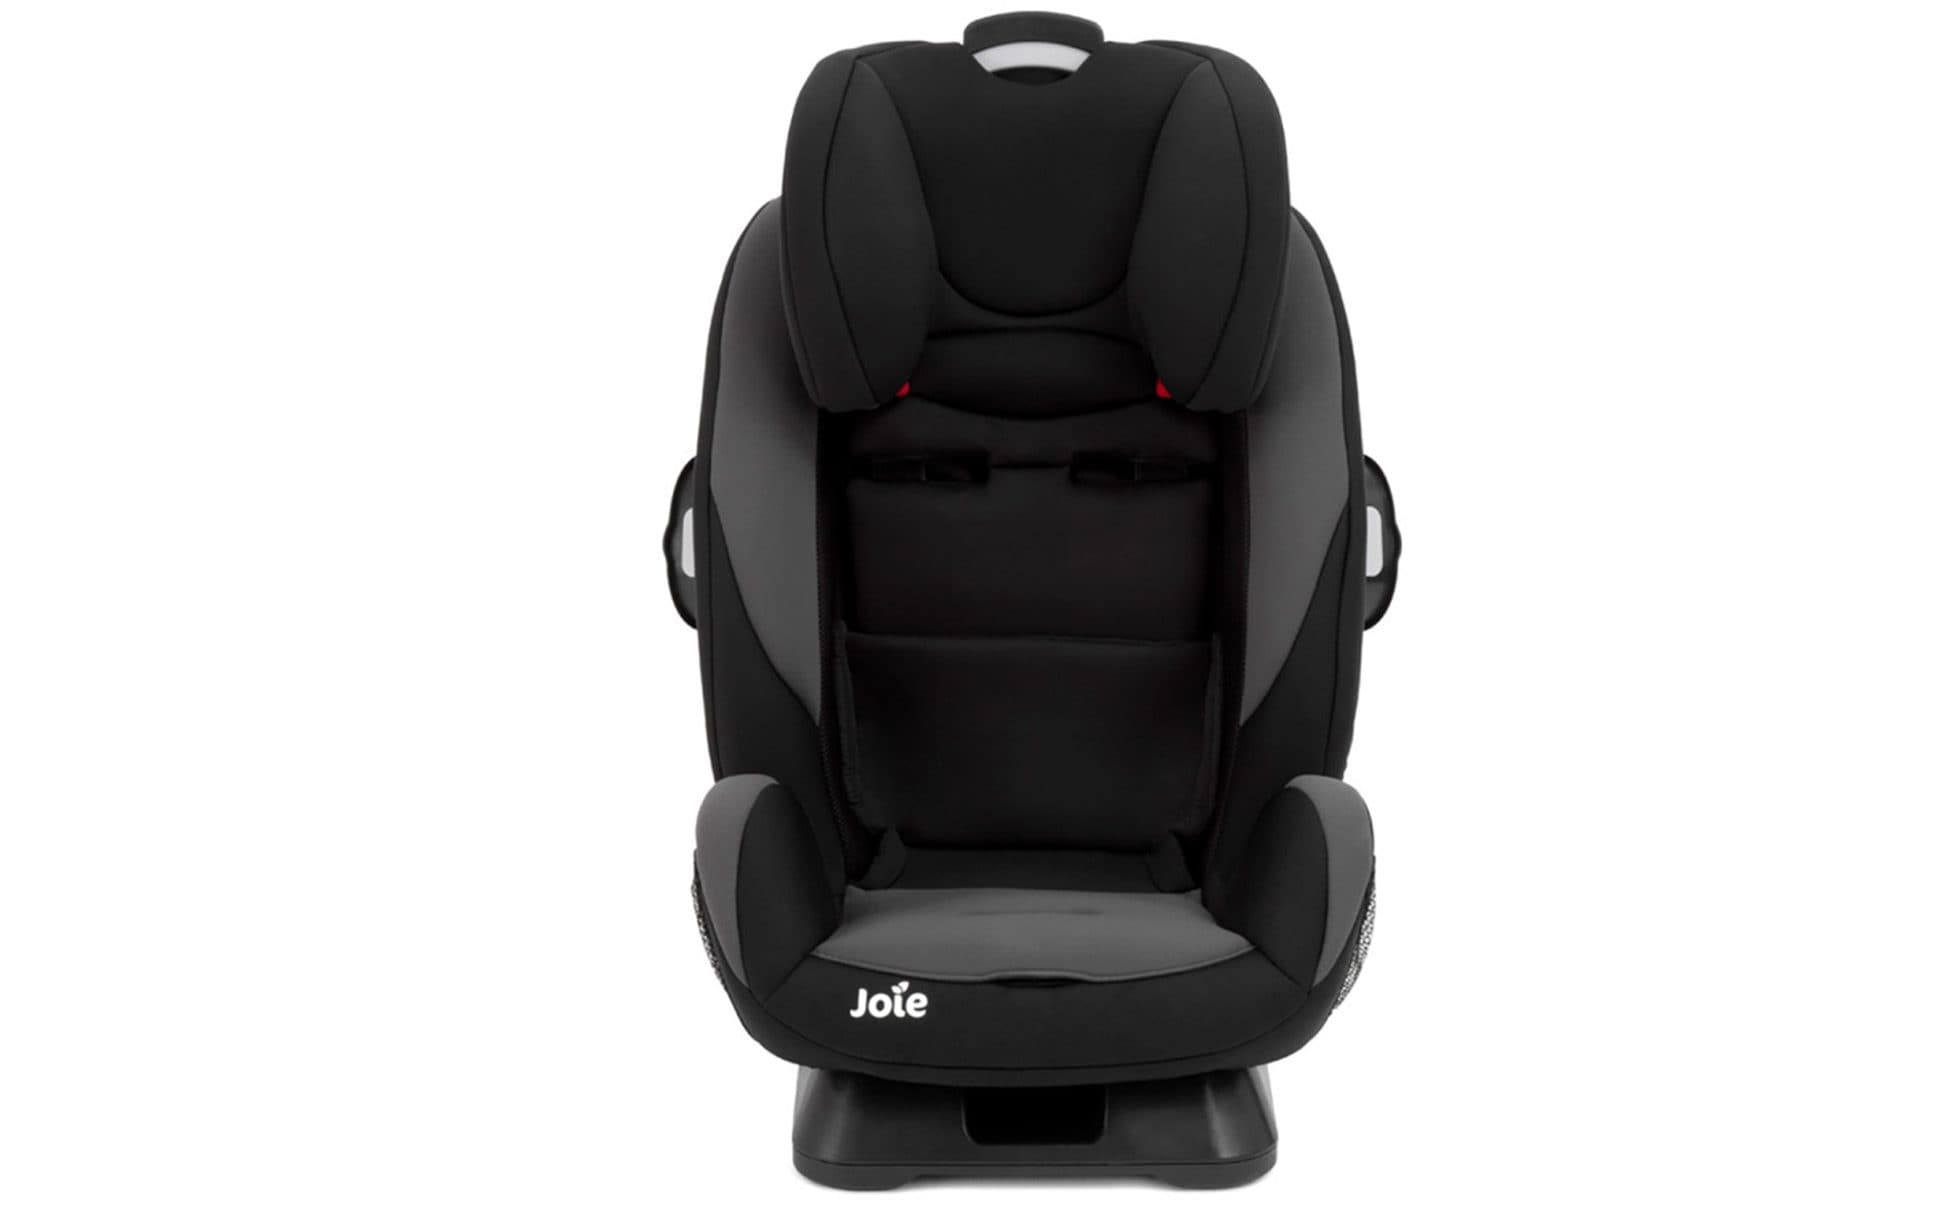 Joie Baby Car Seat Usa Six Of The Best Car Seats And Travel Systems For Infants And